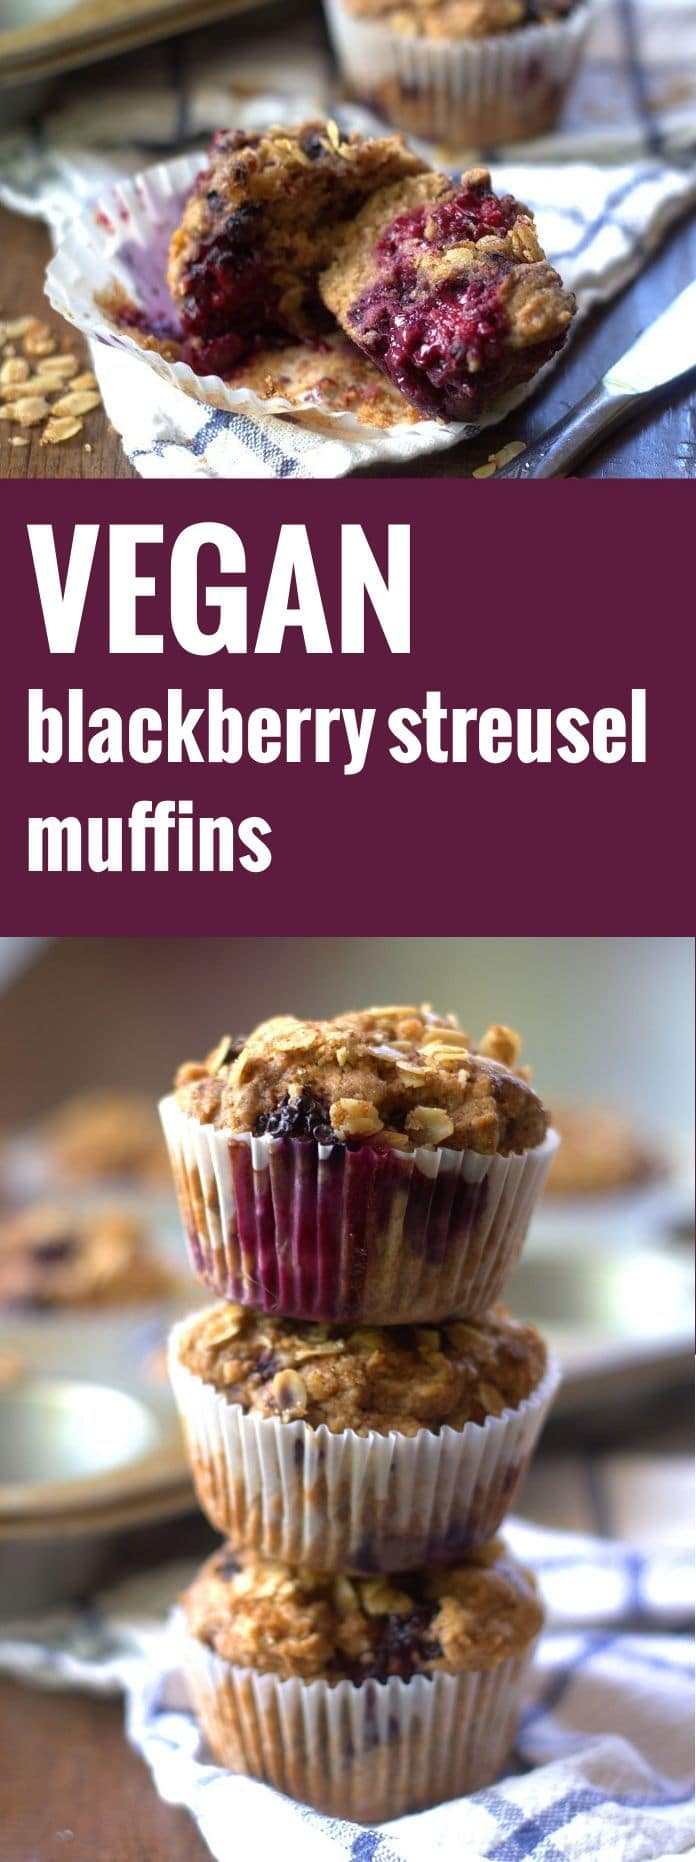 Vegan Blackberry Muffins with Oatmeal Streusel Topping